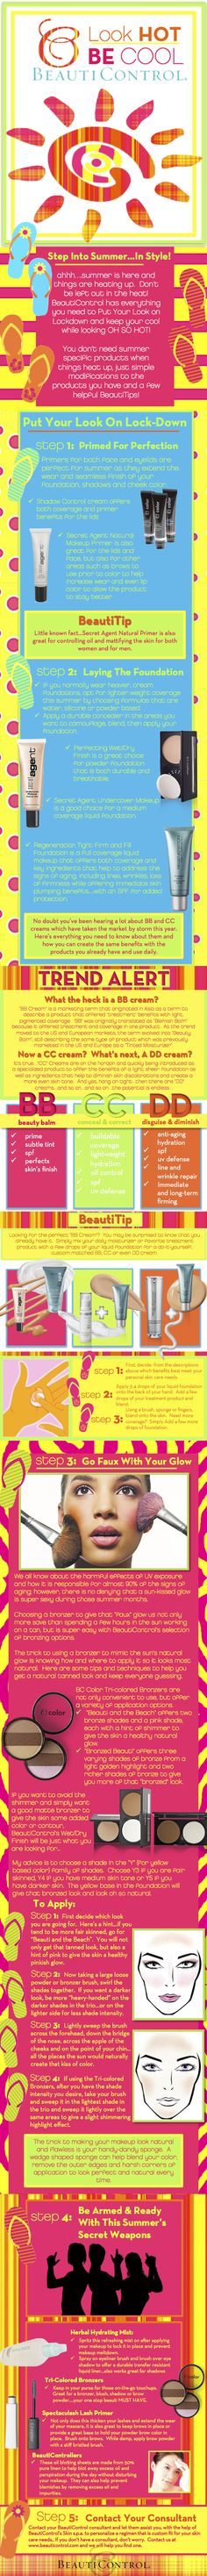 BeautiControl has everything you need to look HOT, and be COOL this Summer!  www.beautipage.com/fountain